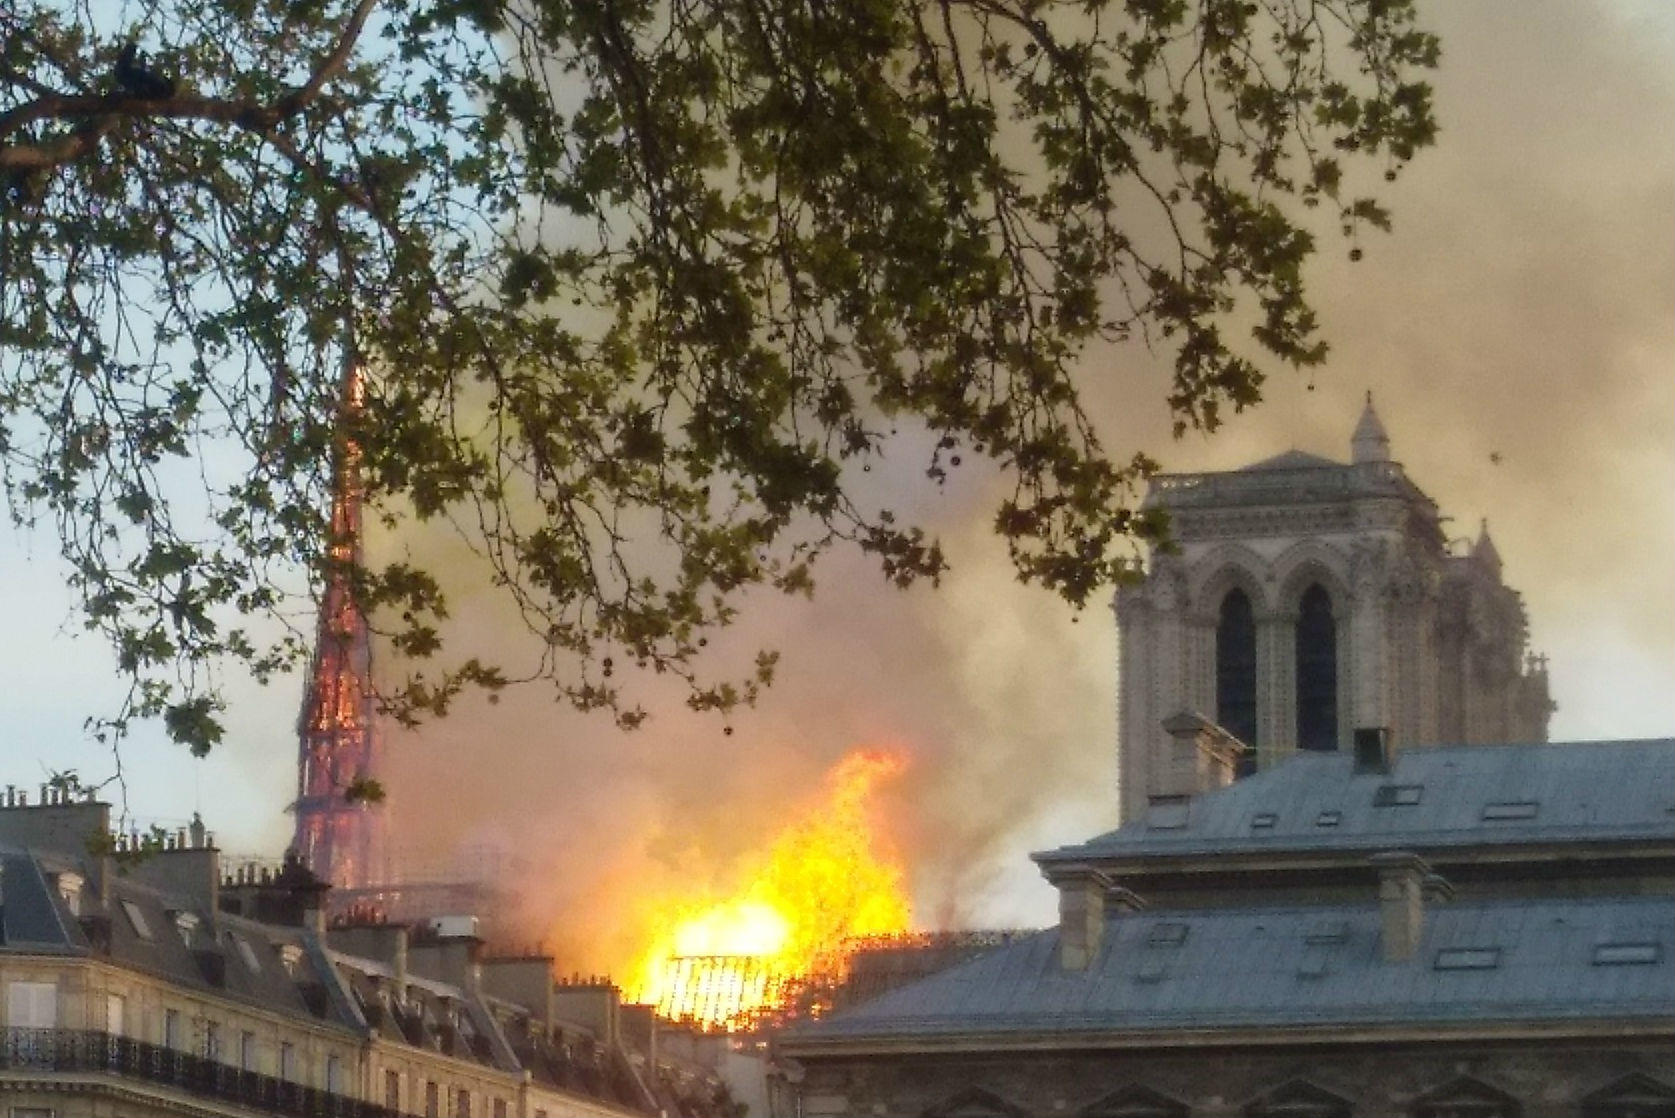 Notre Dame fire—world reacts as Our Lady of Paris burns for nine hours